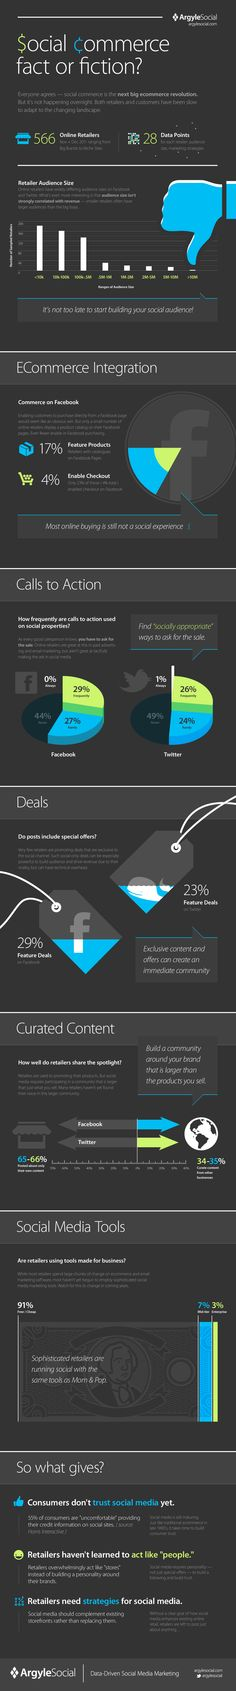 Social commerce, fact or fiction [infographic]